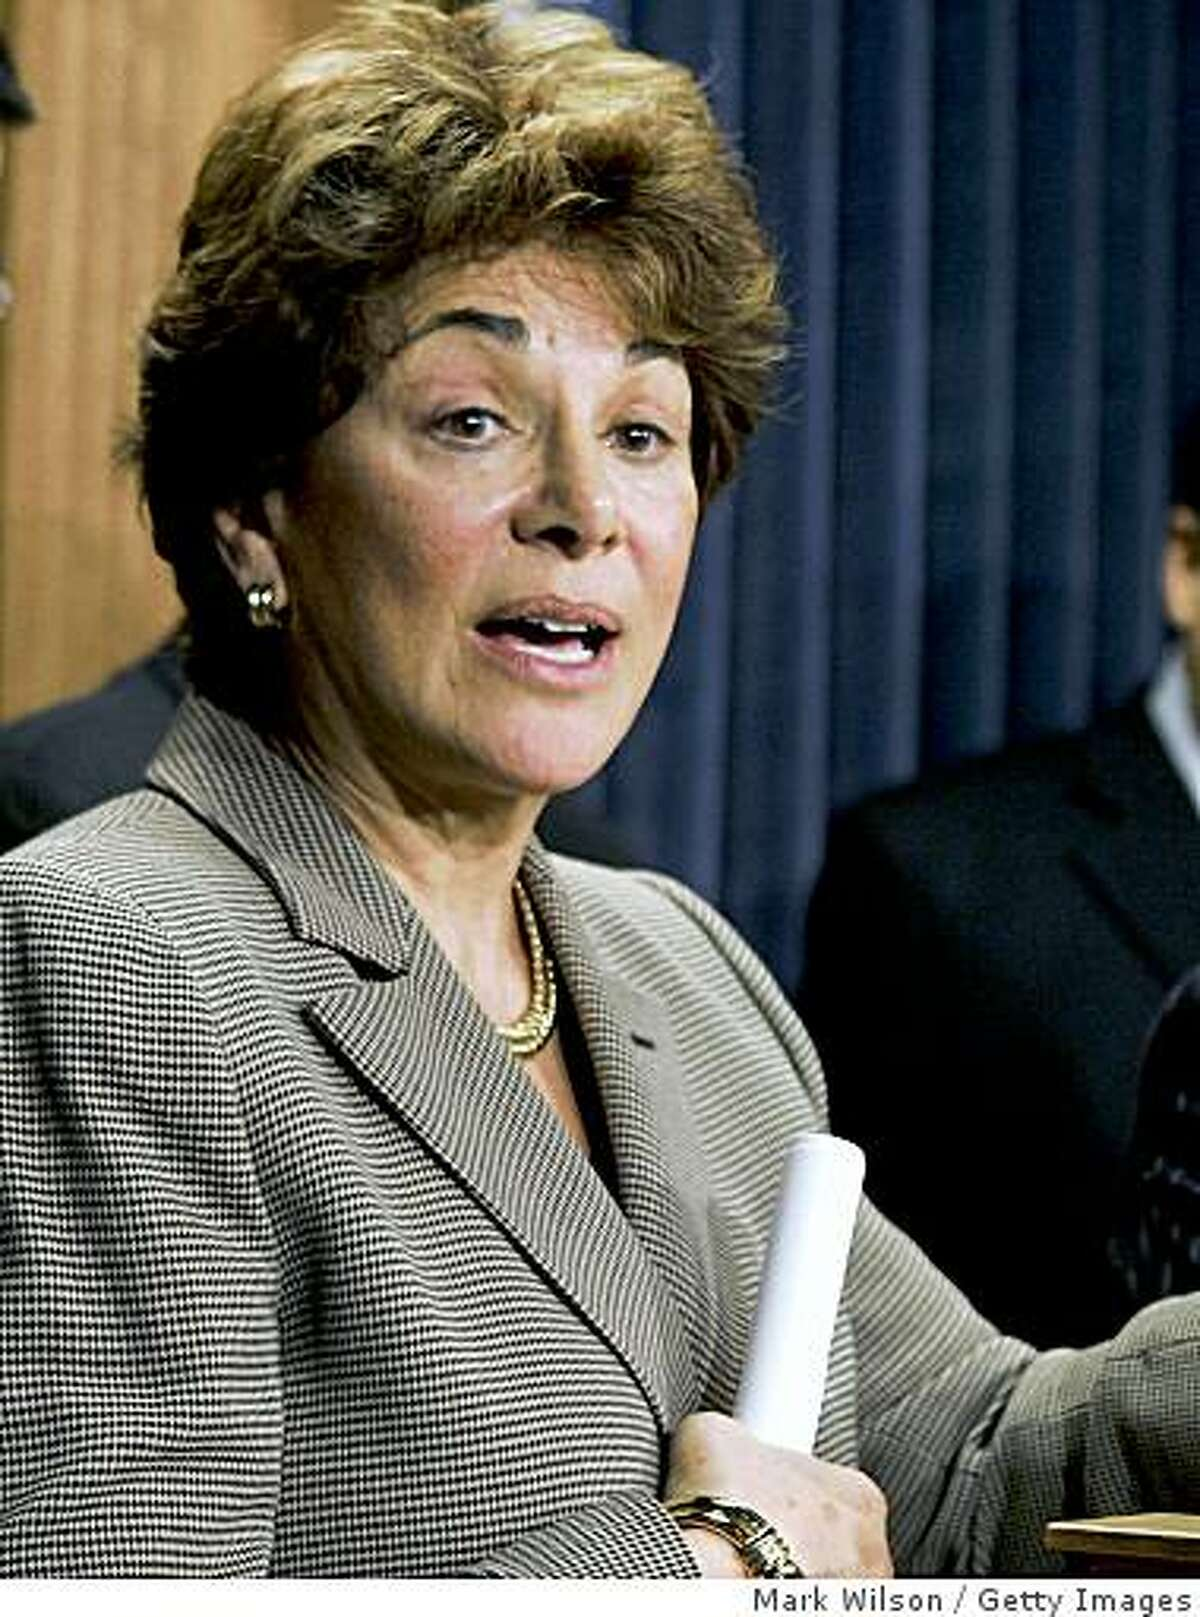 WASHINGTON - NOVEMBER 18: U.S. Rep. Anna Eshoo (D-CA) (L), flanked by U.S. Rep. Jane Harman (D-CA), speaks during a news conference during a press conference on pre-war intelligence on Capitol Hill November 18, 2005 in Washington DC. The Select Intelligence Committee Democrats spoke about prewar WMD intelligence leading up to the Iraq war. (Photo by Mark Wilson/Getty Images) Ran on: 03-11-2009 U.S. Rep. Anna Eshoo's district south of San Francisco was ranked as the most contented in the United States. Ran on: 12-06-2009 Rep. Anna Eshoo, a Palo Alto Democrat, introduced the legislation that boosts Silicon Valley biotech firms development of biologics, new drugs based on gene splicing. Ran on: 09-02-2010 Anna Eshoo, Googles ally in the past, differs with the firm on its plan for Internet flow. Ran on: 09-02-2010 Photo caption Dummy text goes here. Dummy text goes here. Dummy text goes here. Dummy text goes here. Dummy text goes here. Dummy text goes here. Dummy text goes here. Dummy text goes here.###Photo: google02_eshoo_PH1132185600Getty Images North America###Live Caption:WASHINGTON - NOVEMBER 18: U.S. Rep. Anna Eshoo (D-CA) (L), flanked by U.S. Rep. Jane Harman (D-CA), speaks during a news conference during a press conference on pre-war intelligence on Capitol Hill November 18, 2005 in Washington DC. The Select Intelligence Committee Democrats spoke about prewar WMD intelligence leading up to the Iraq war. (Photo by Mark Wilson-Getty Images)###Caption History:WASHINGTON - NOVEMBER 18: U.S. Rep. Anna Eshoo (D-CA) (L), flanked by U.S. Rep. Jane Harman (D-CA), speaks during a news conference during a press conference on pre-war intelligence on Capitol Hill November 18,...